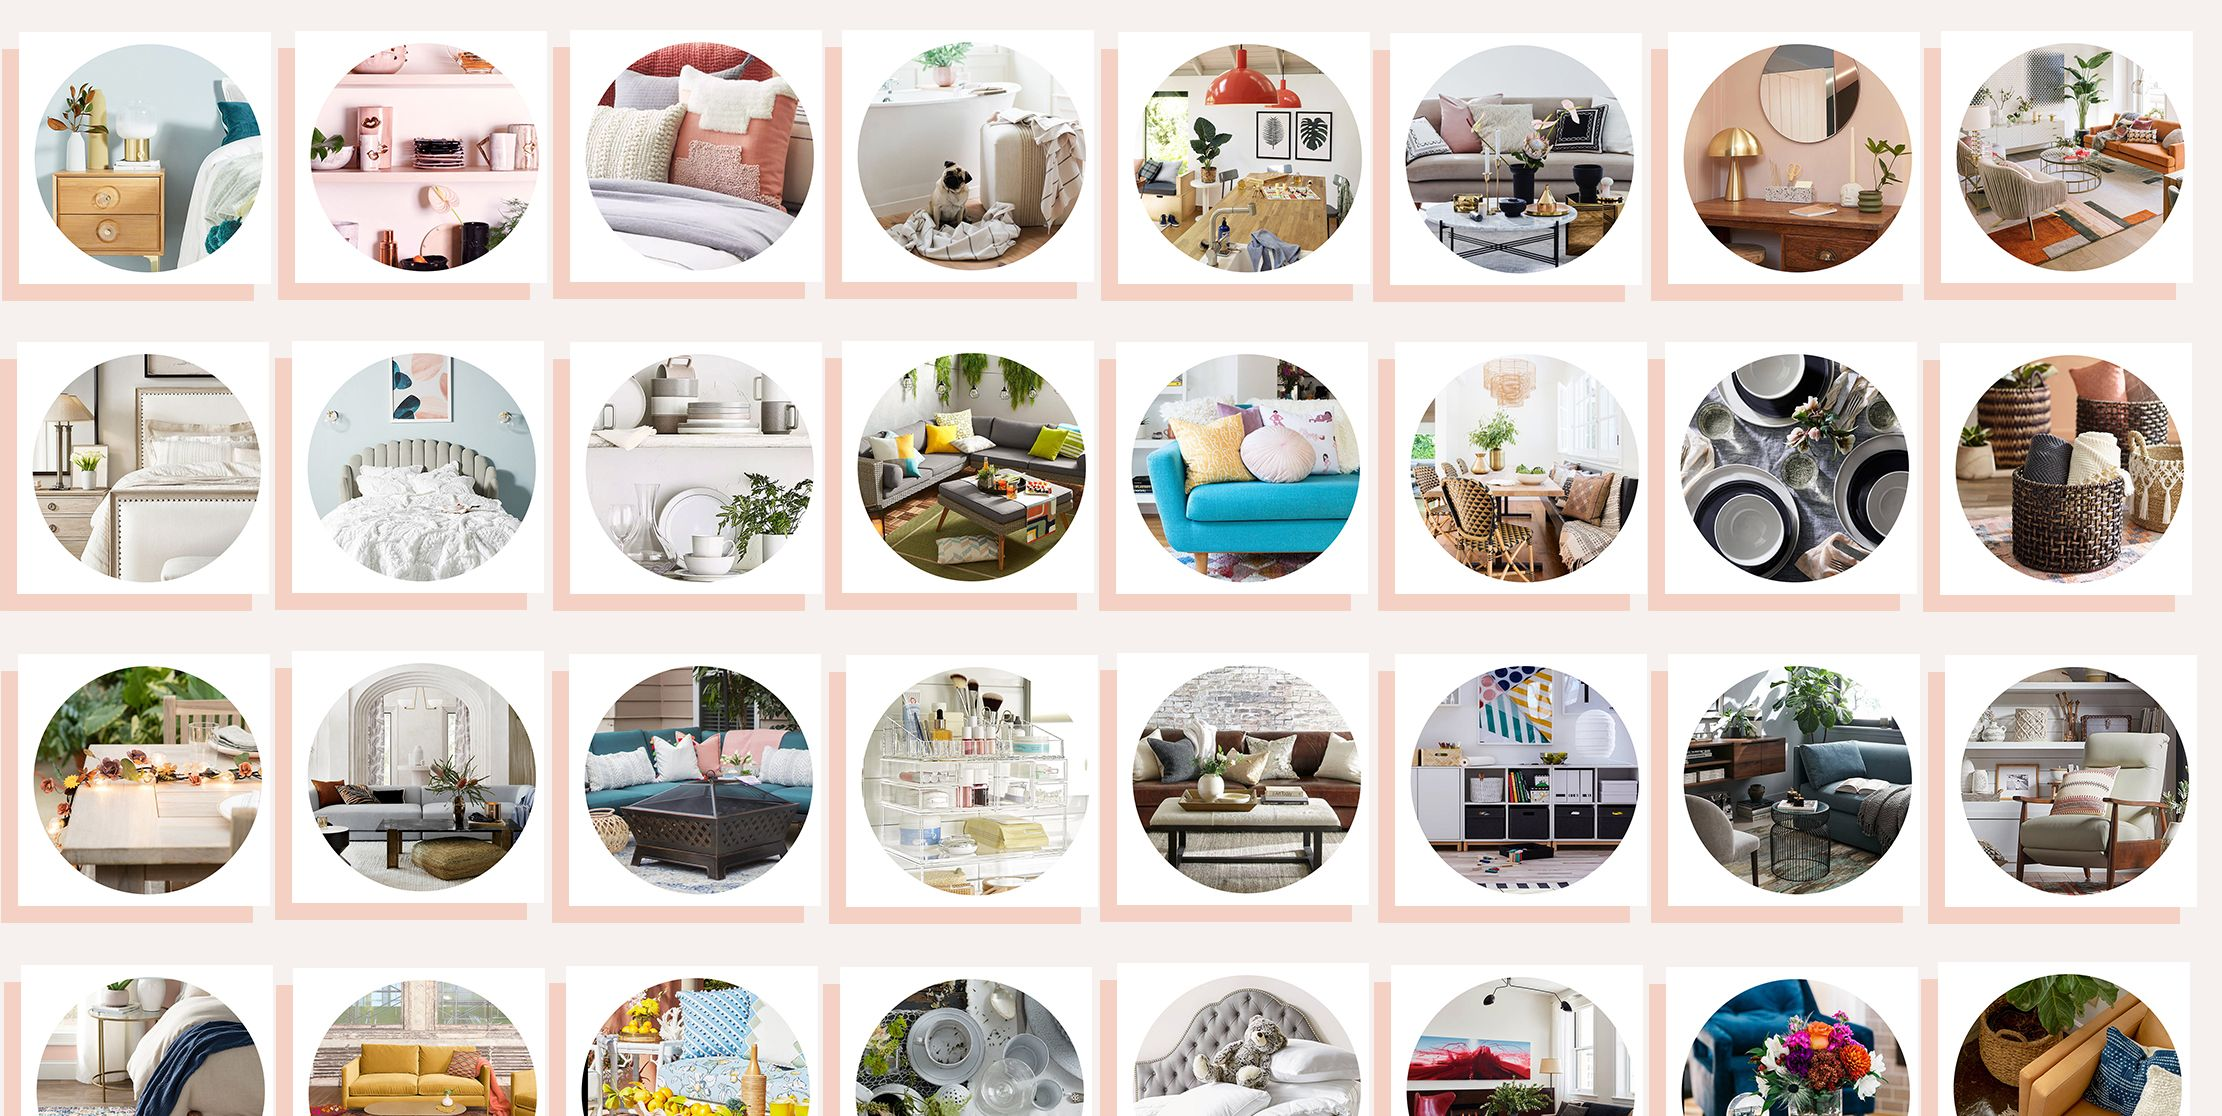 30 Best Home Decor Stores to Shop Online in 2020